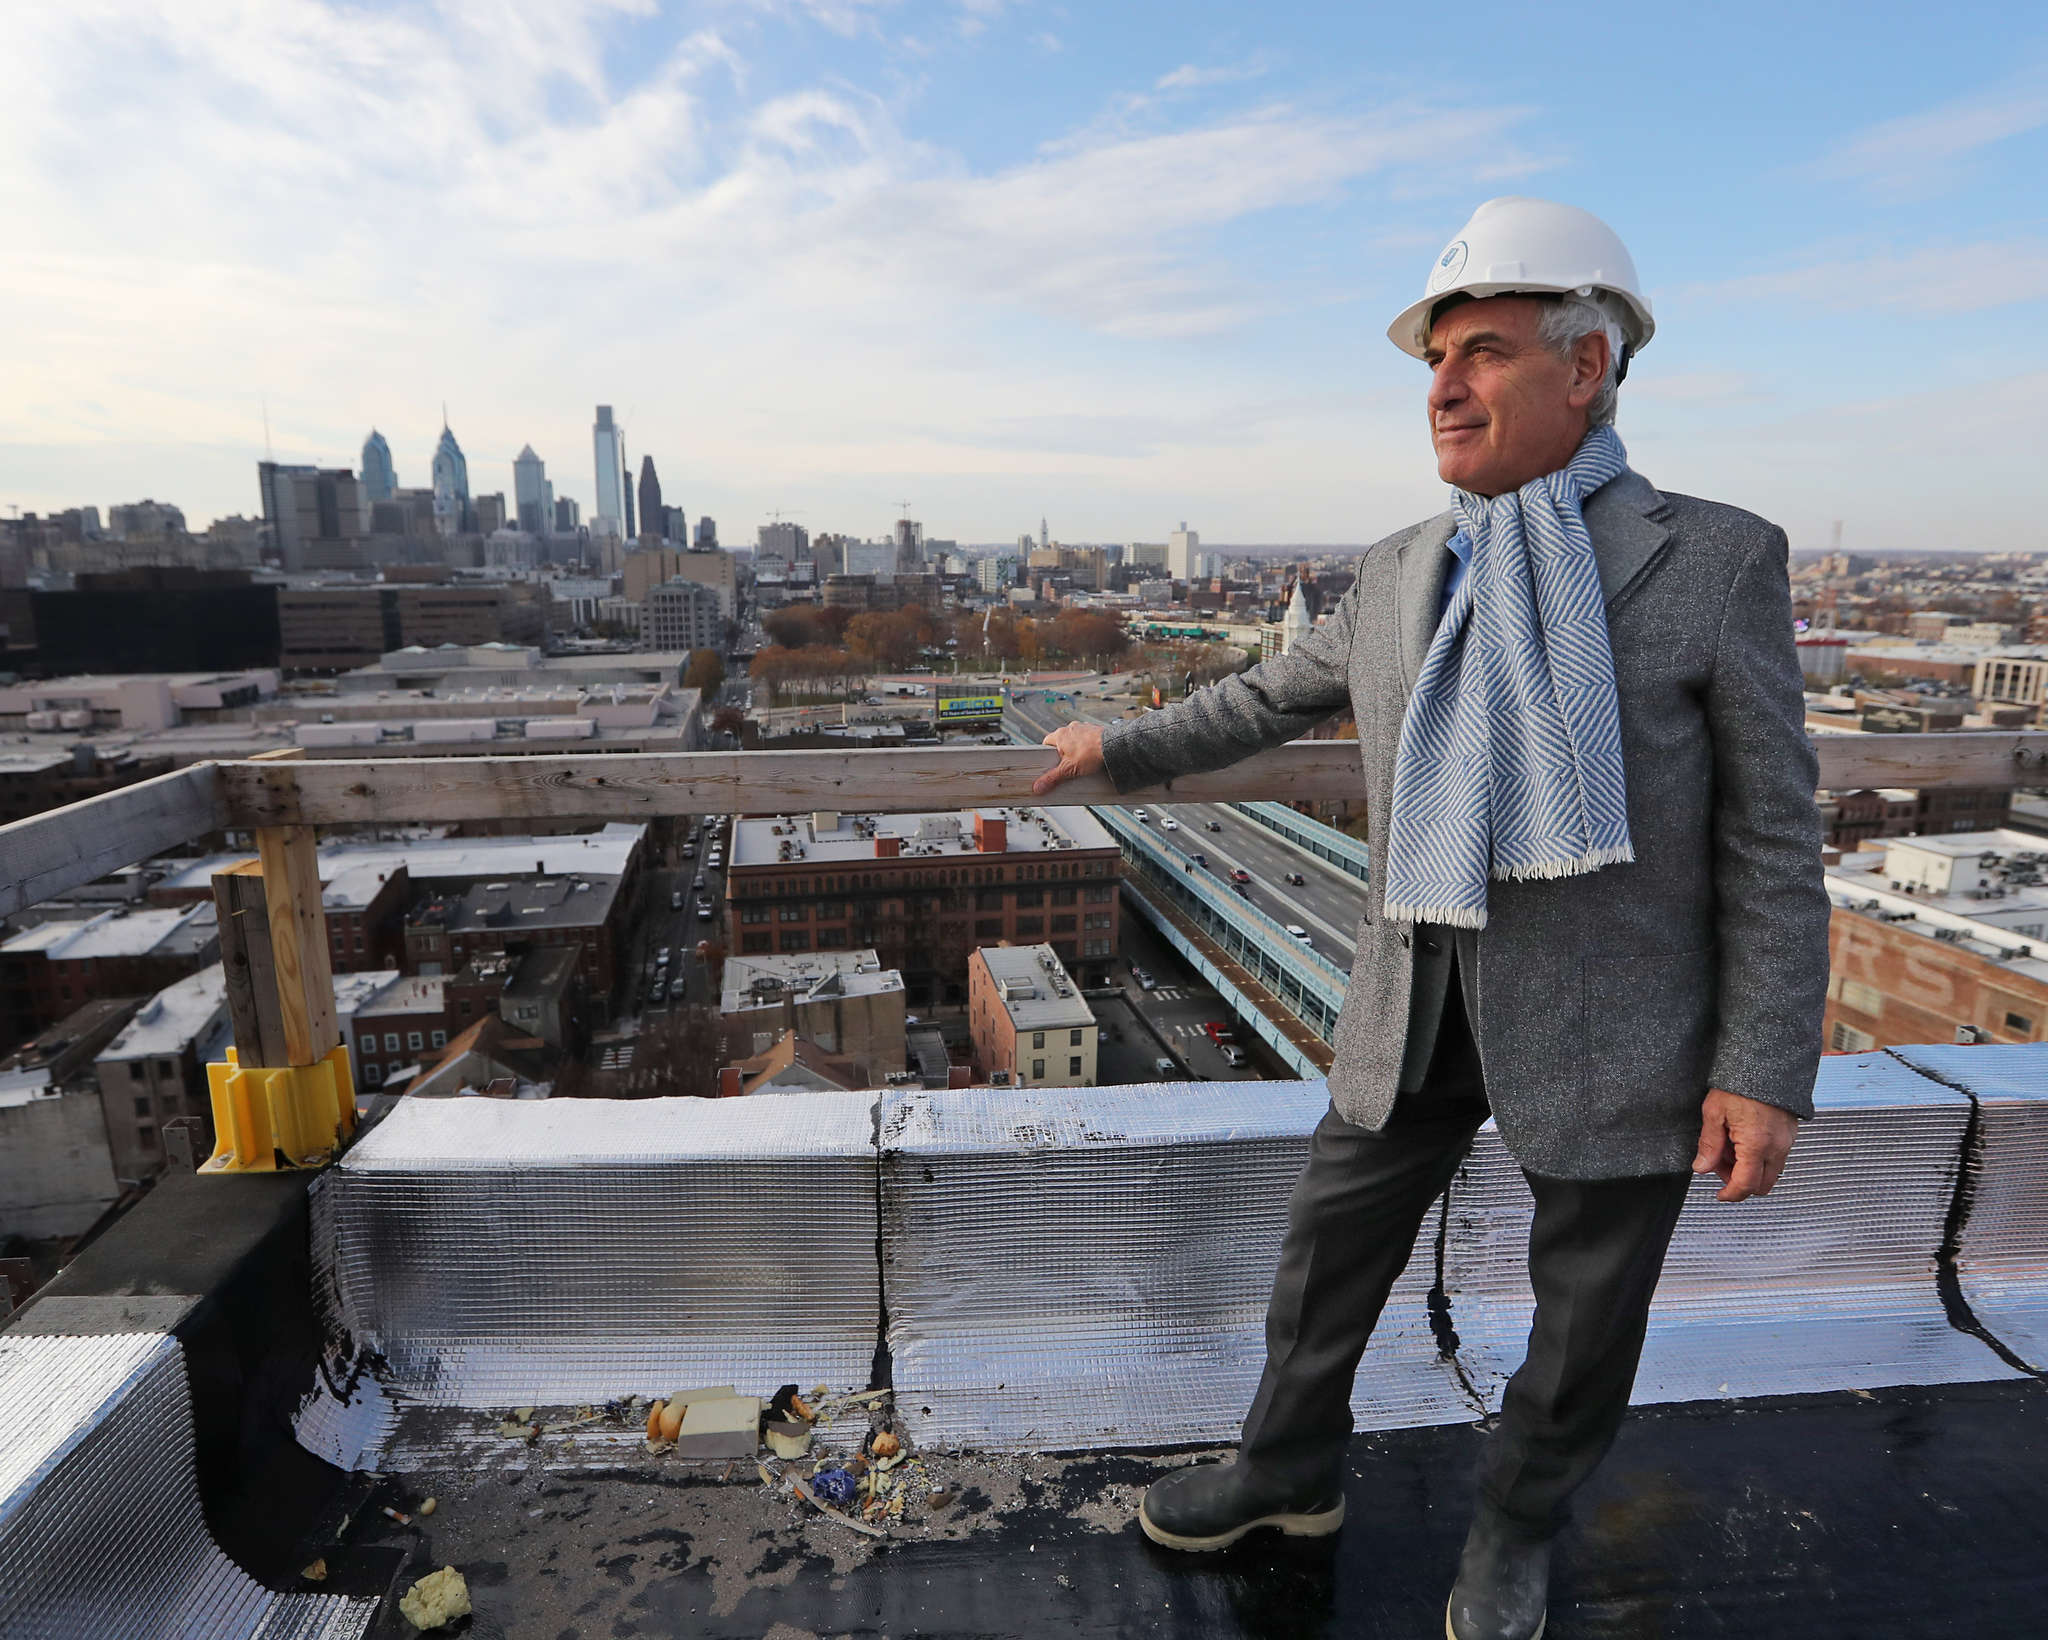 Jeffrey Brown on the roof of his BRIDGE project at 205 Race St., which will have 146 rental units.